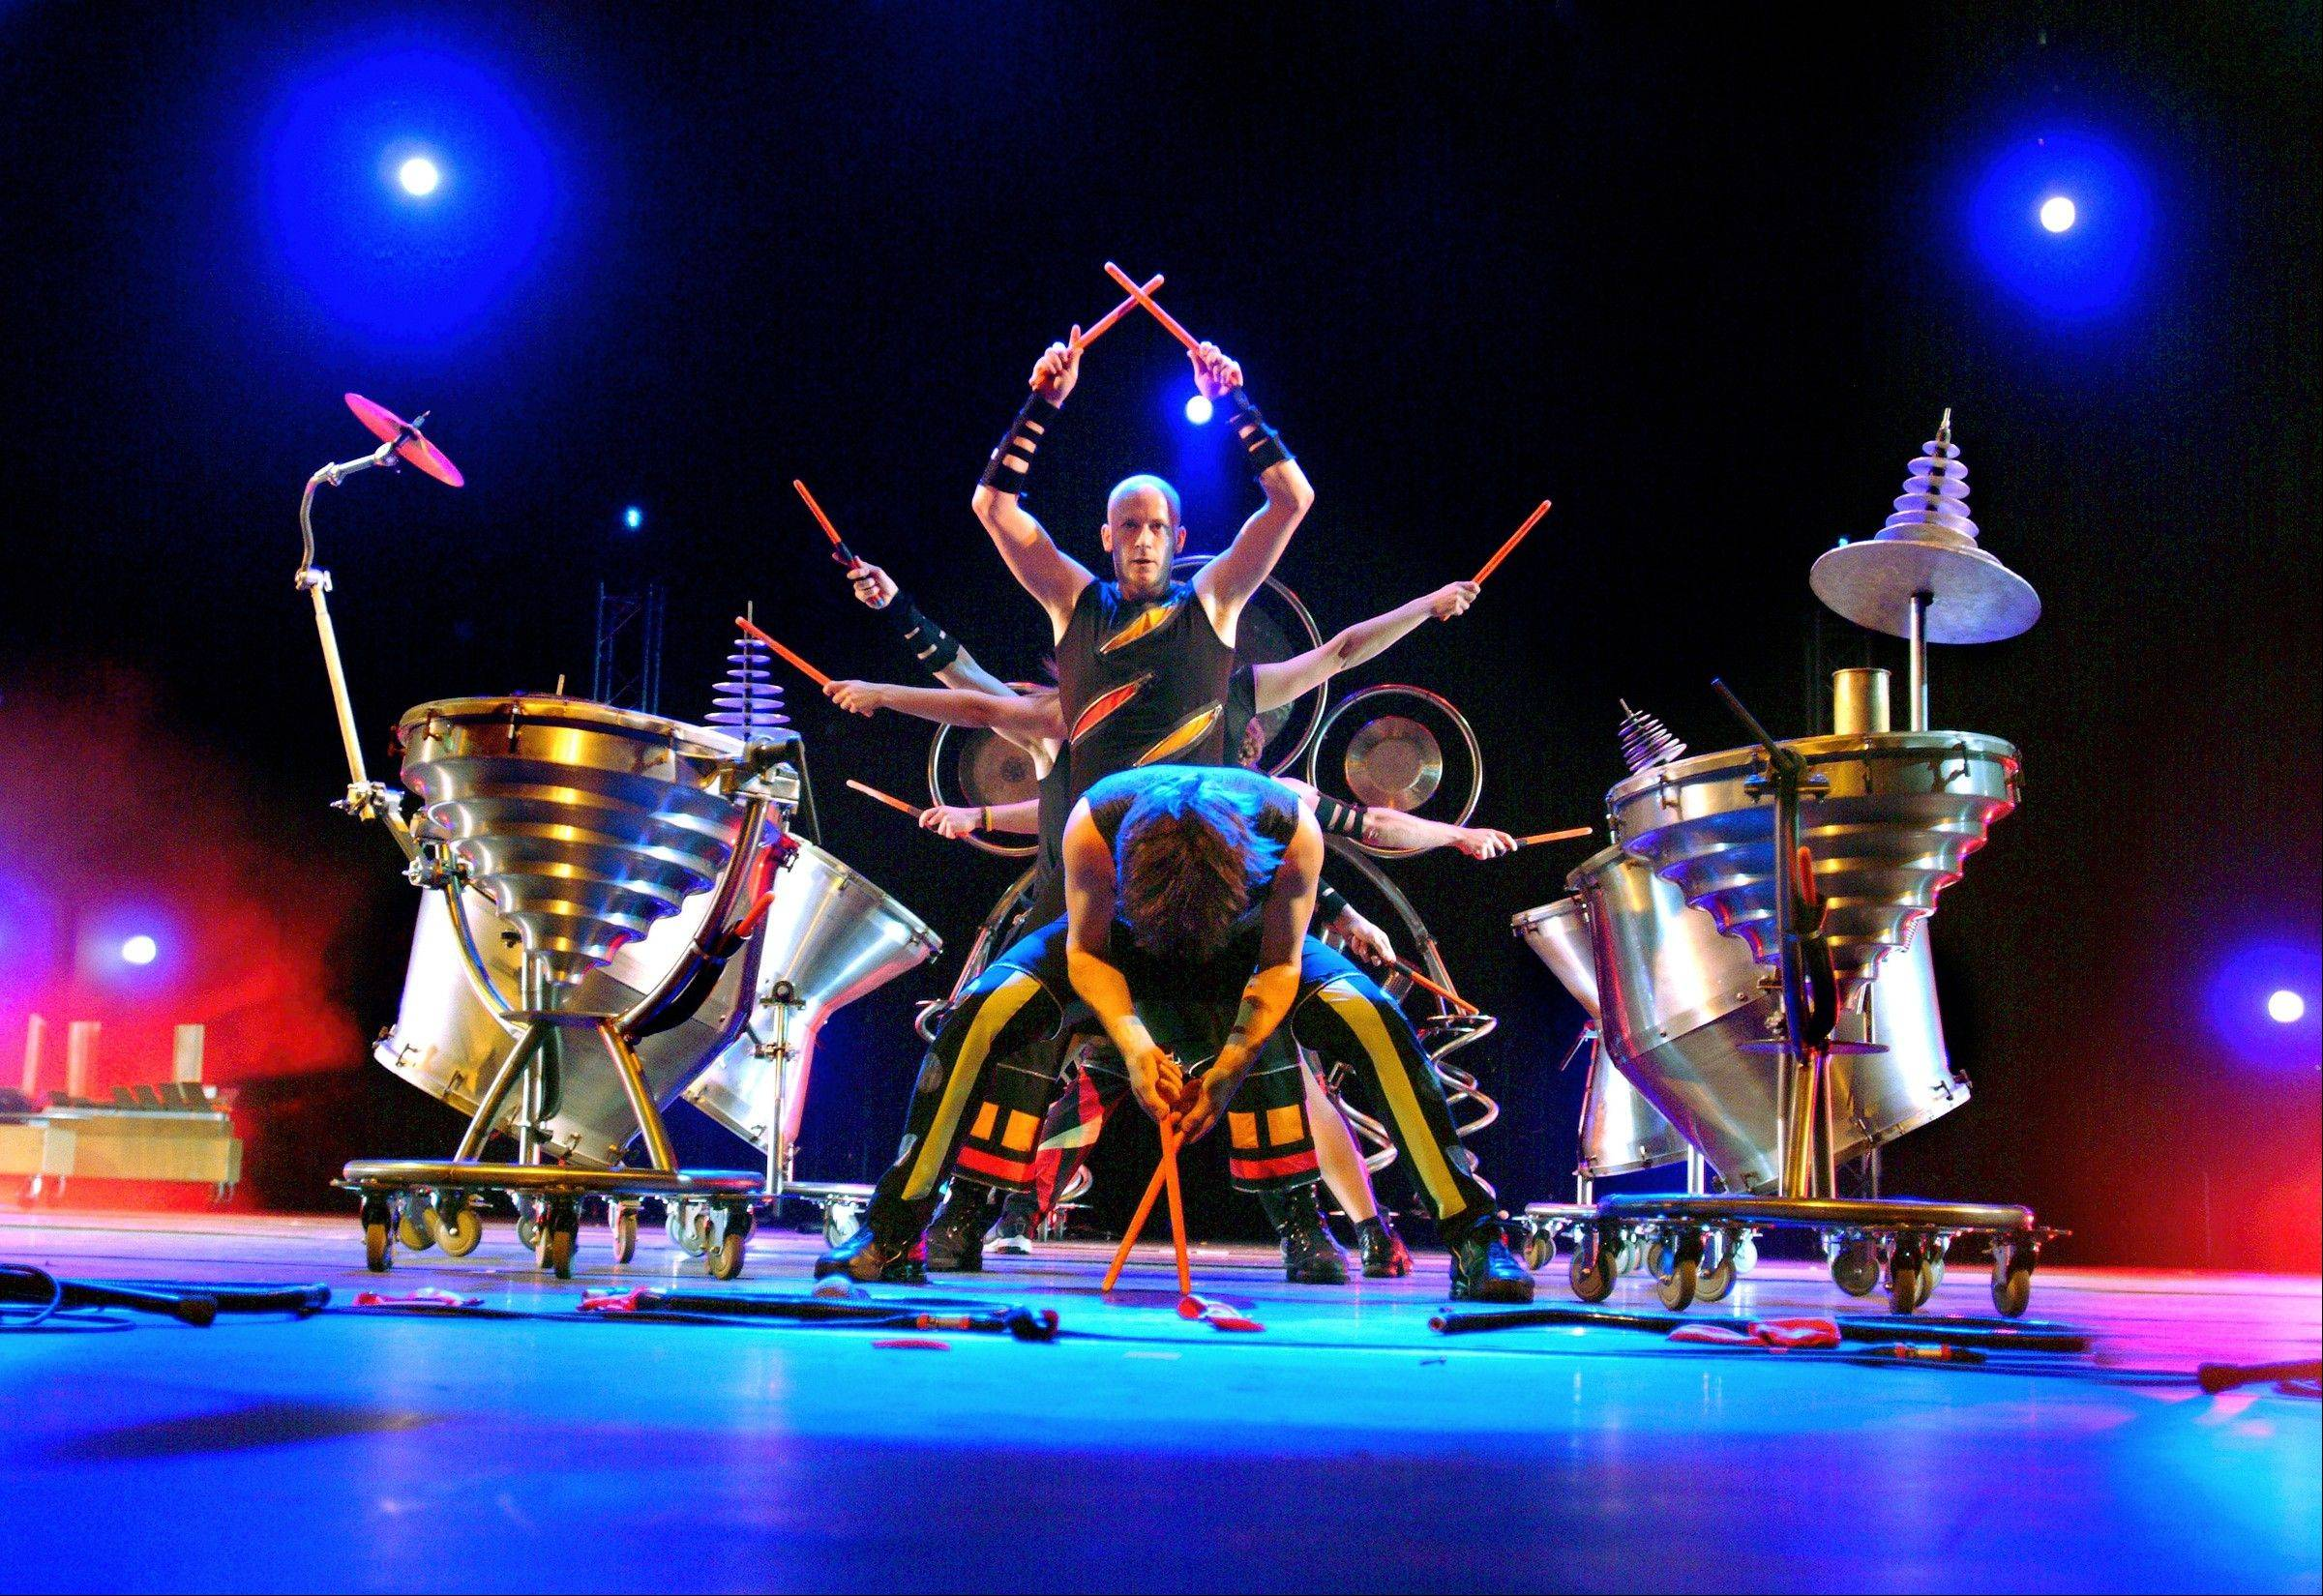 College of DuPage's McAninch Arts Center presents Canadian-based Scrap Arts Music and their high-energy percussion and dance show at Ramsey Auditorium in Fermilab's Wilson Hall in Batavia on Saturday, March 23.